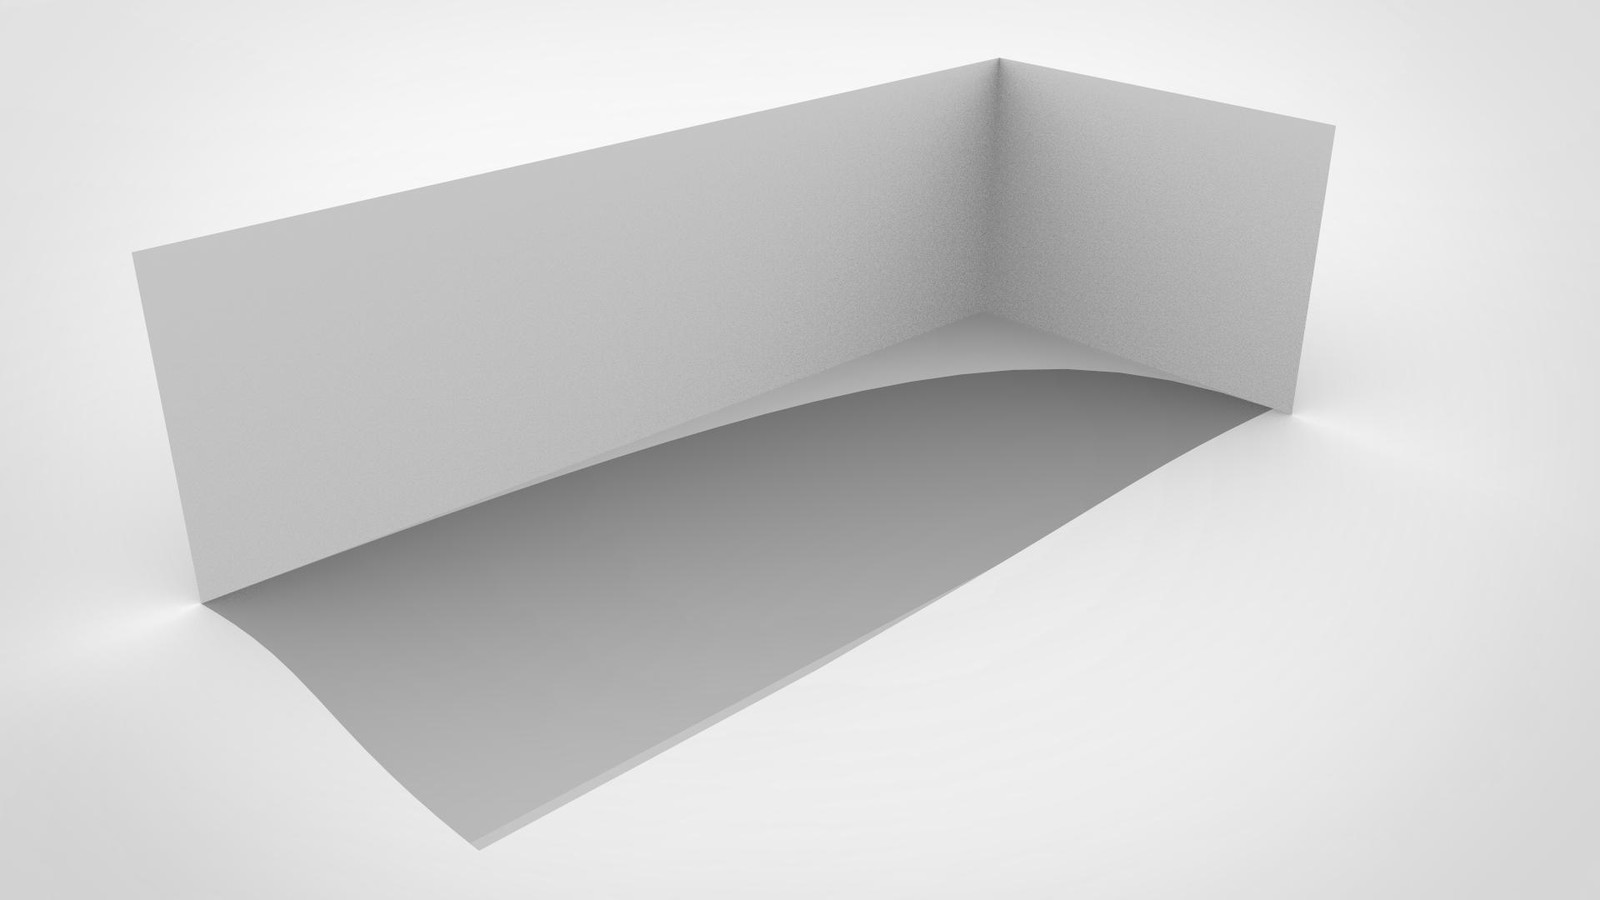 start here: simple boundary surface